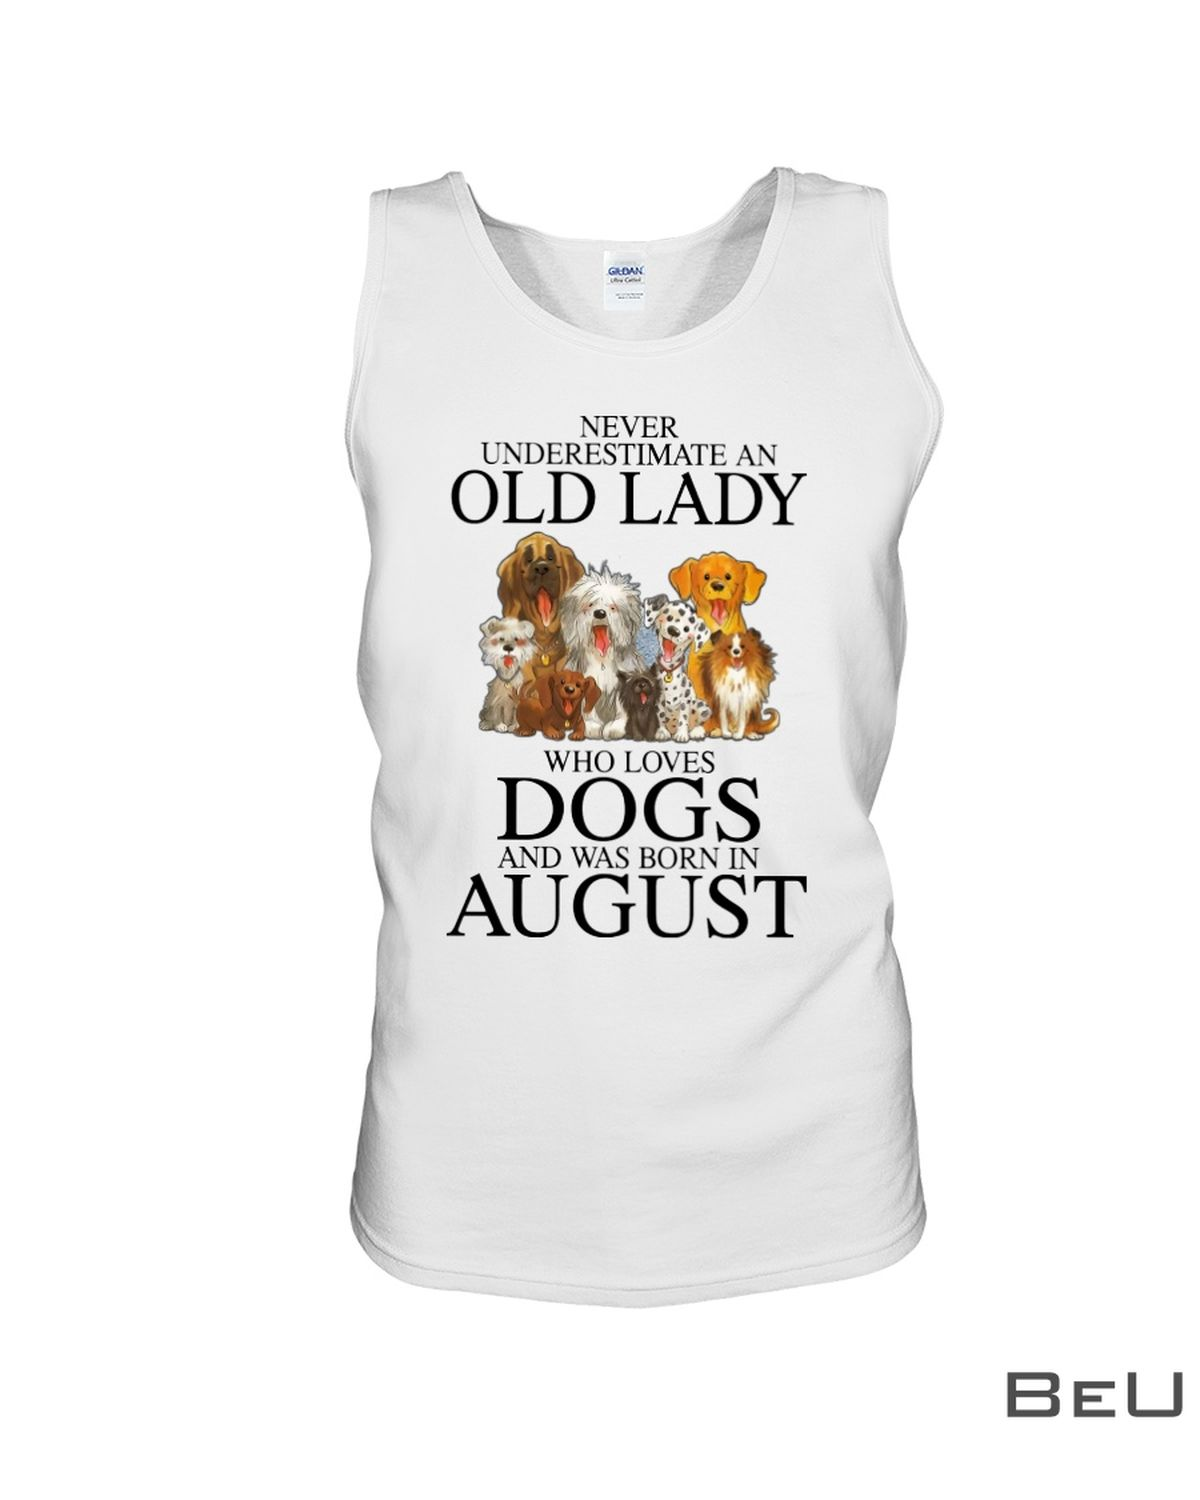 Never underestimate an old lady who loves dogs and was born in August shirtc